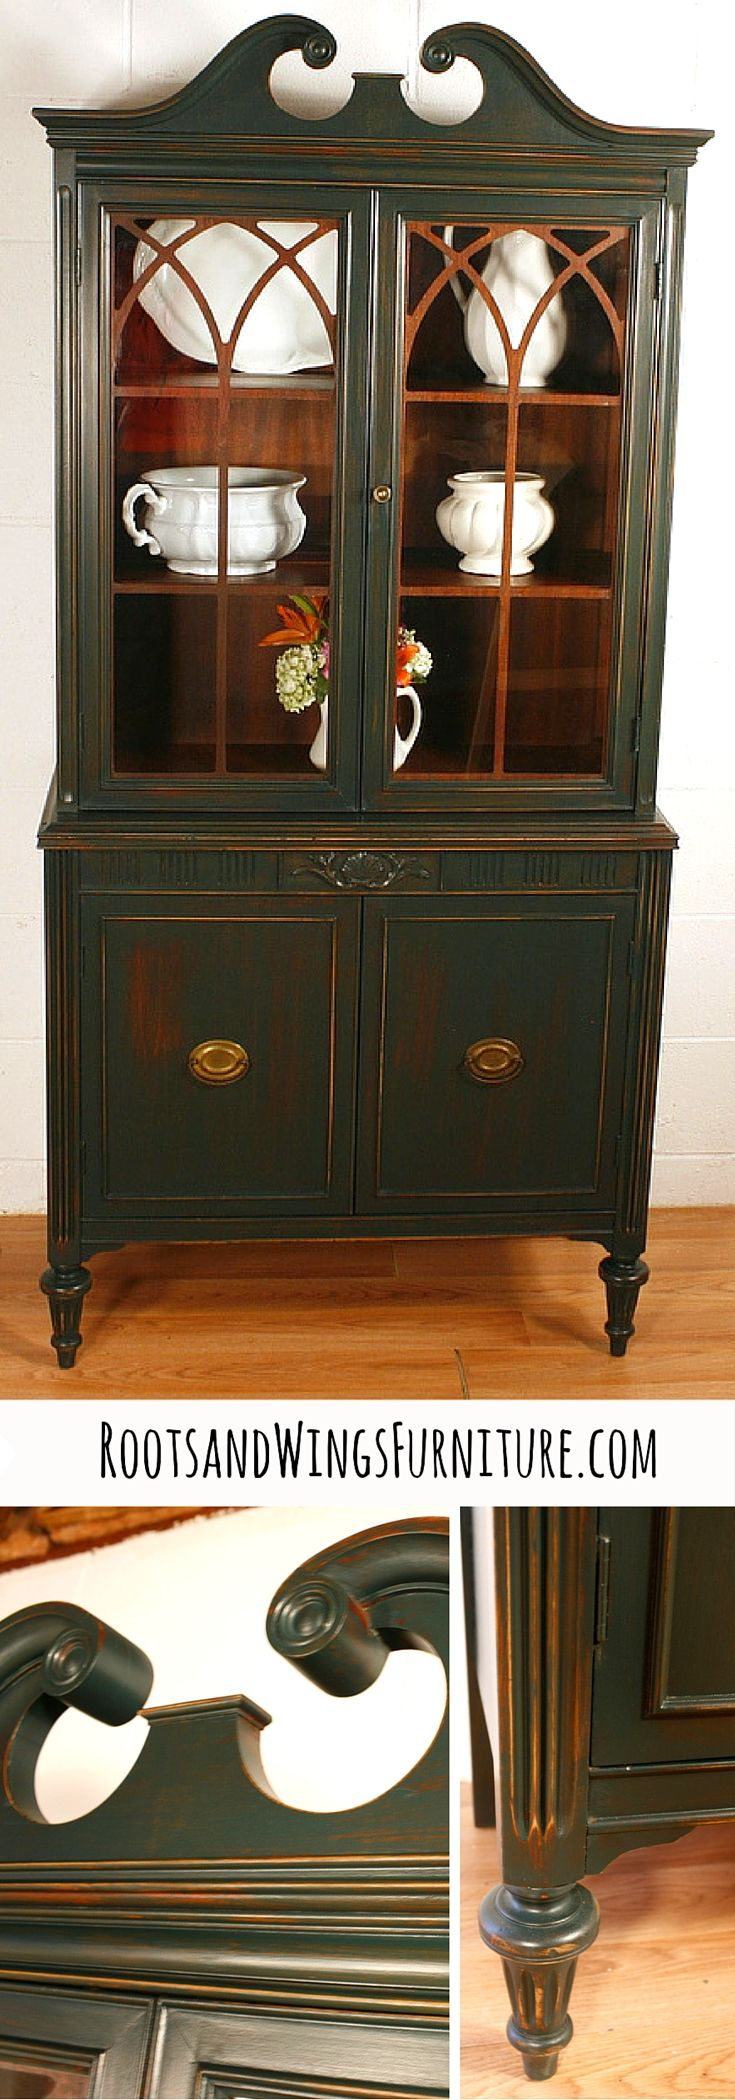 HOLD FOR STELLA Antique Hutch In Hunter Green, China Cabinet, Curio